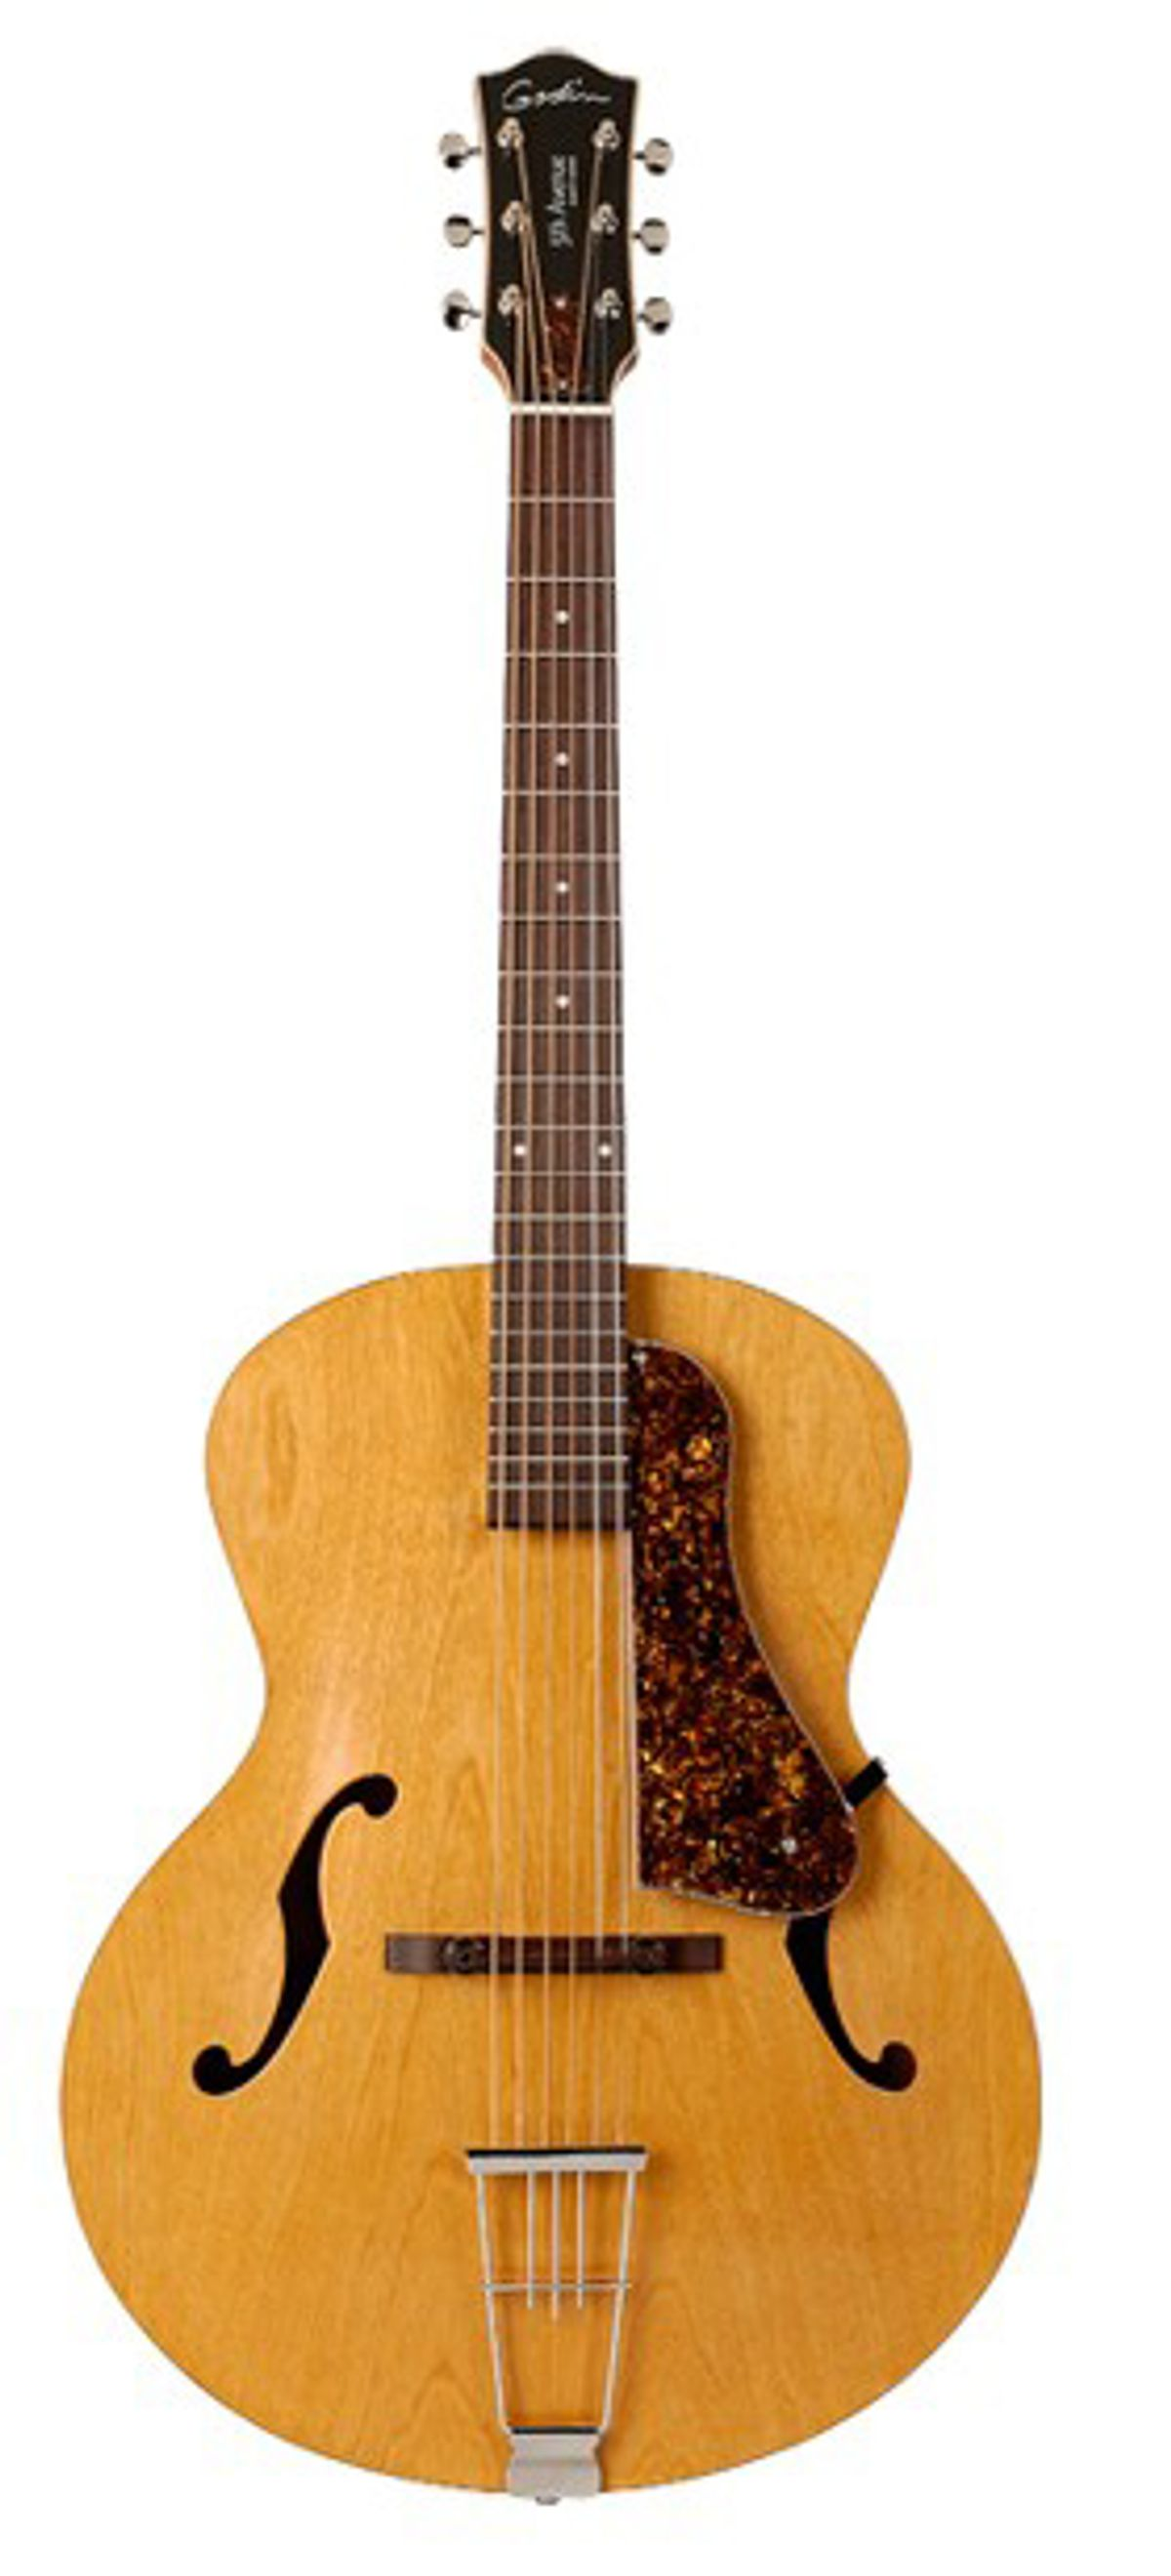 Review: Godin 5th Avenue Archtop